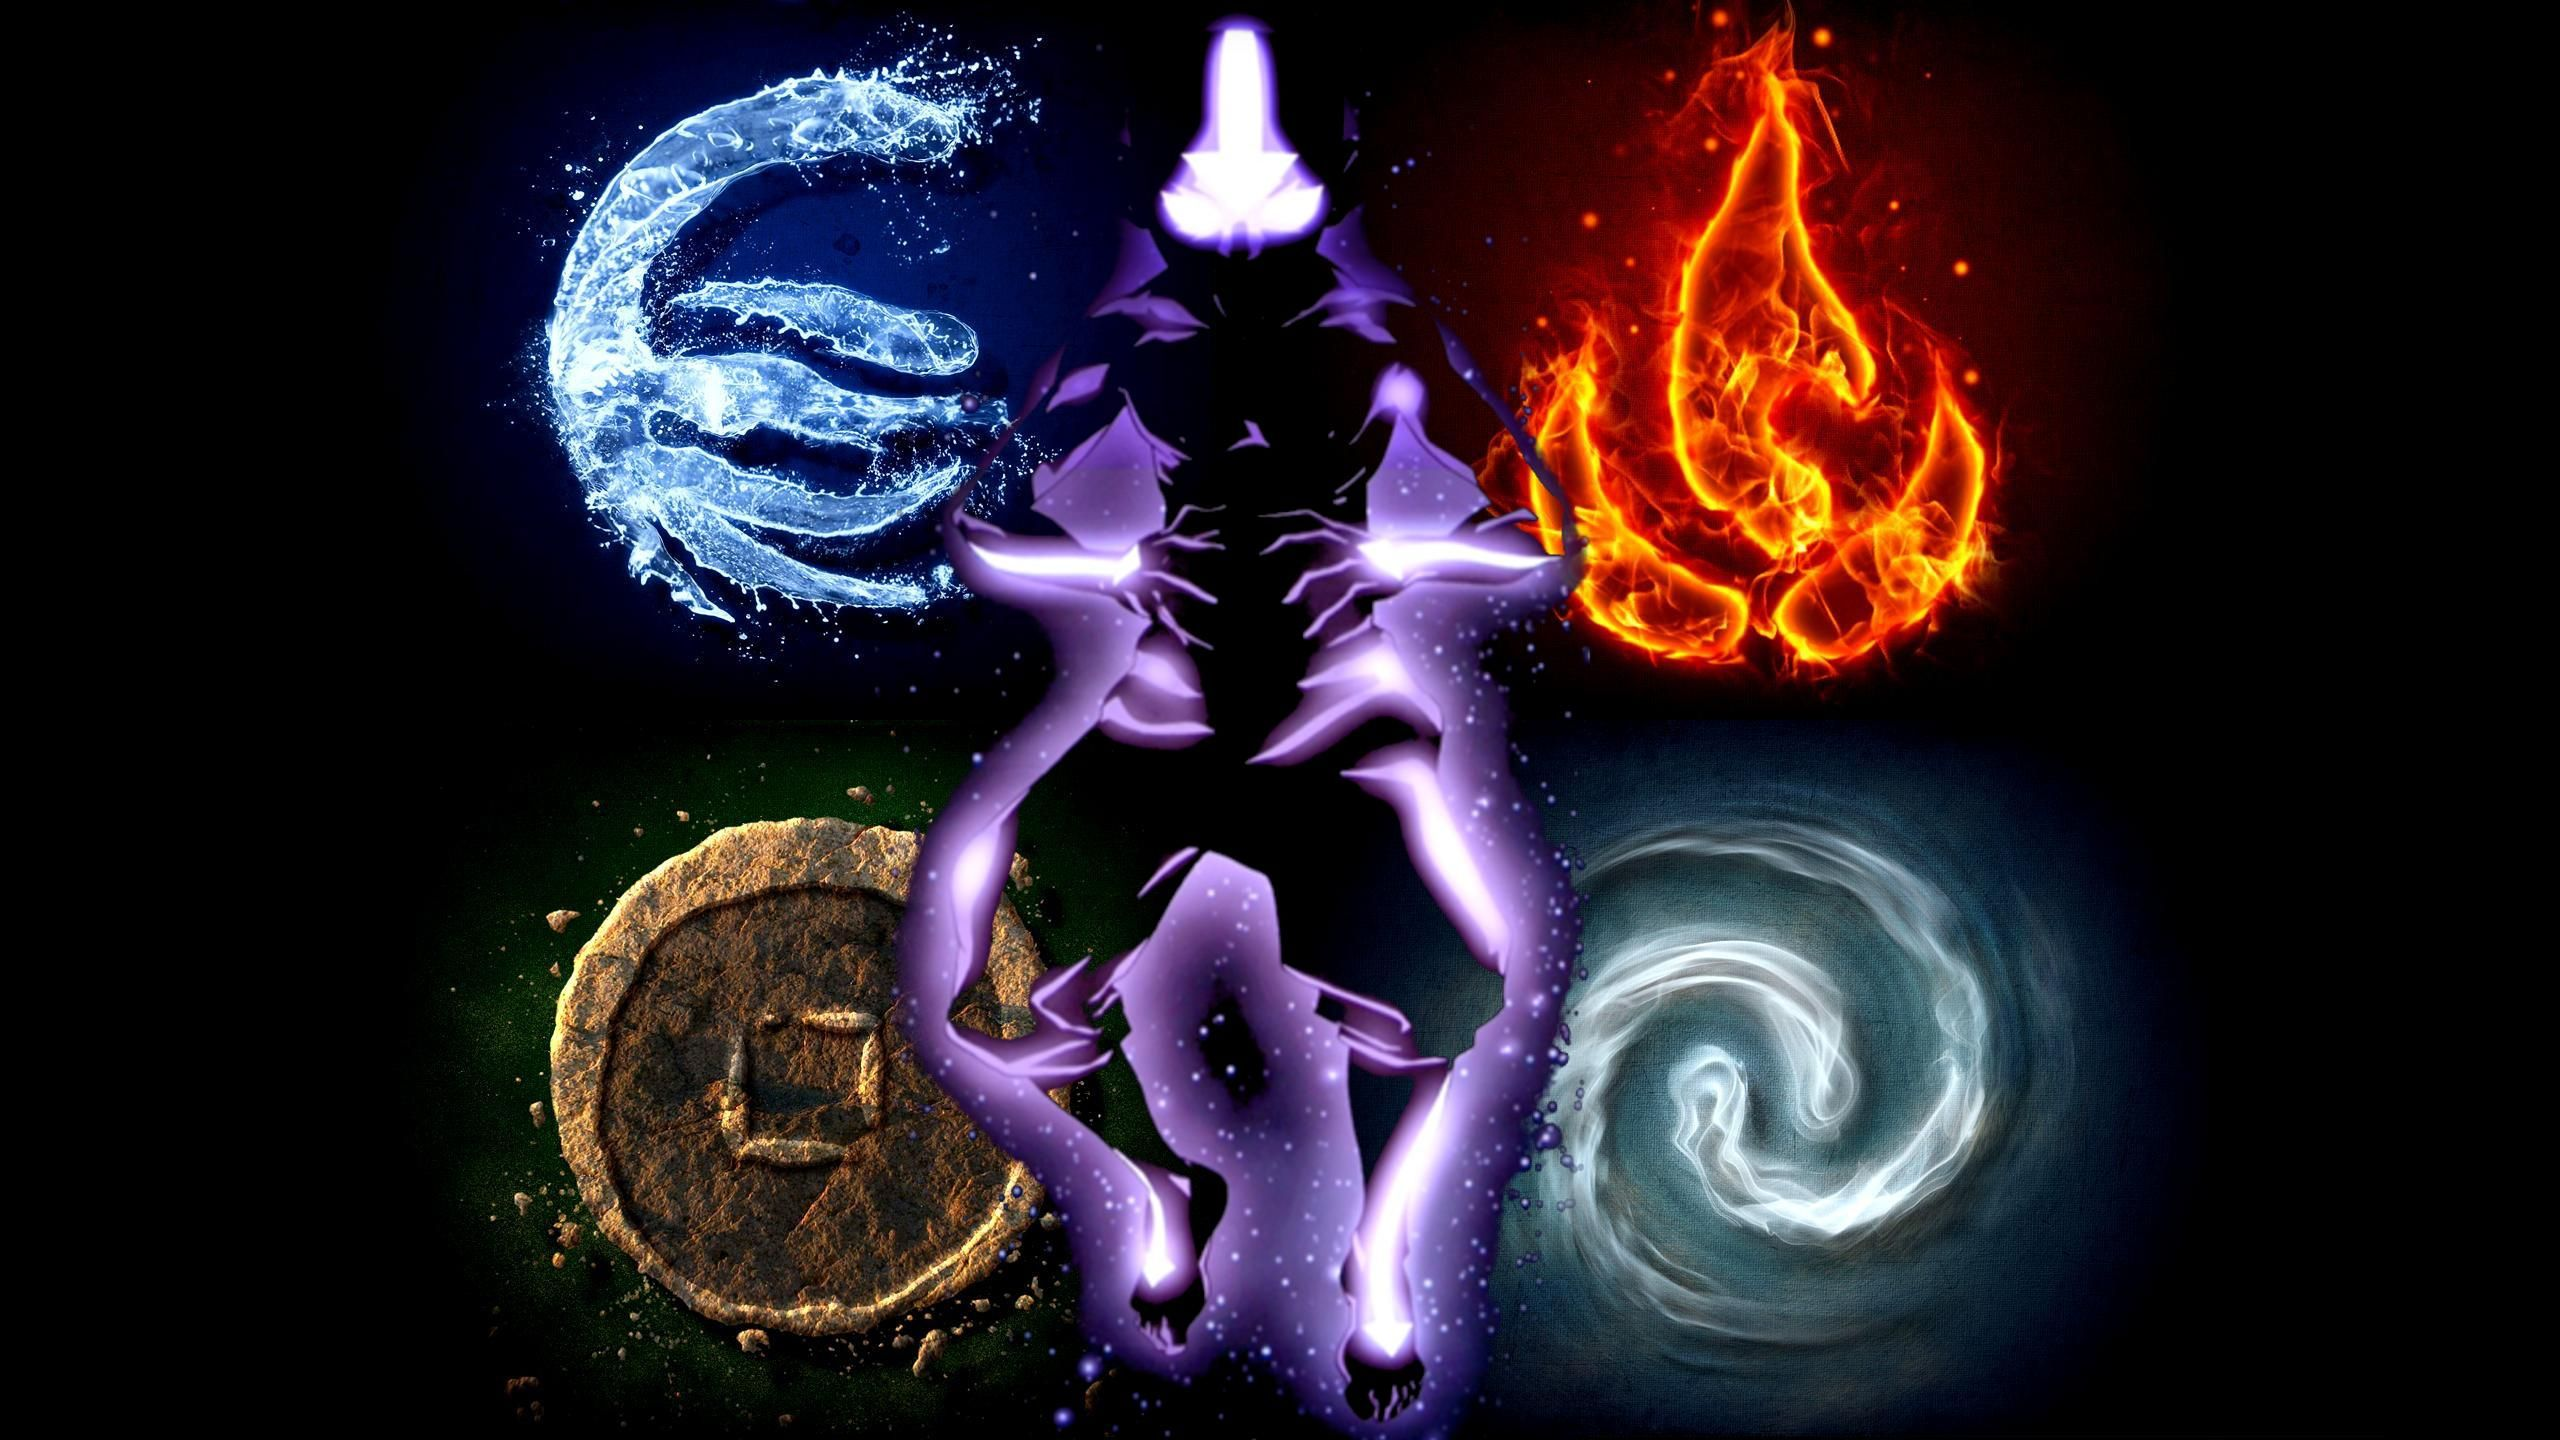 Avatar The Last Airbender Wallpapers Imgur Avatar Aang Avatar Avatar Airbender